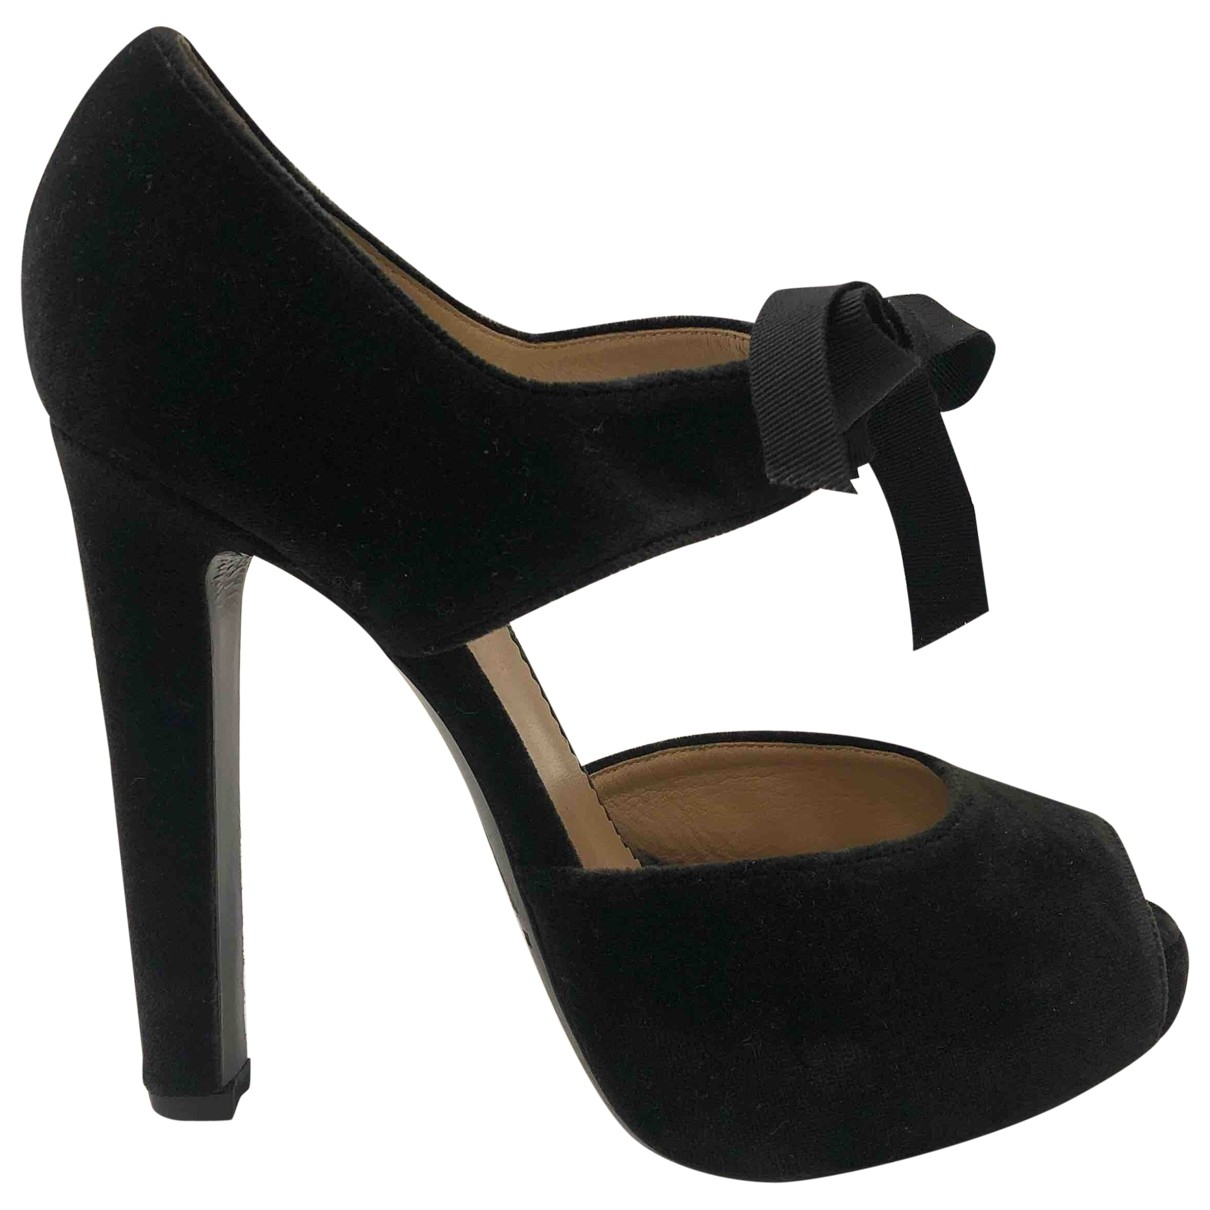 Emporio Armani \N Black Velvet Heels for Women 38 EU